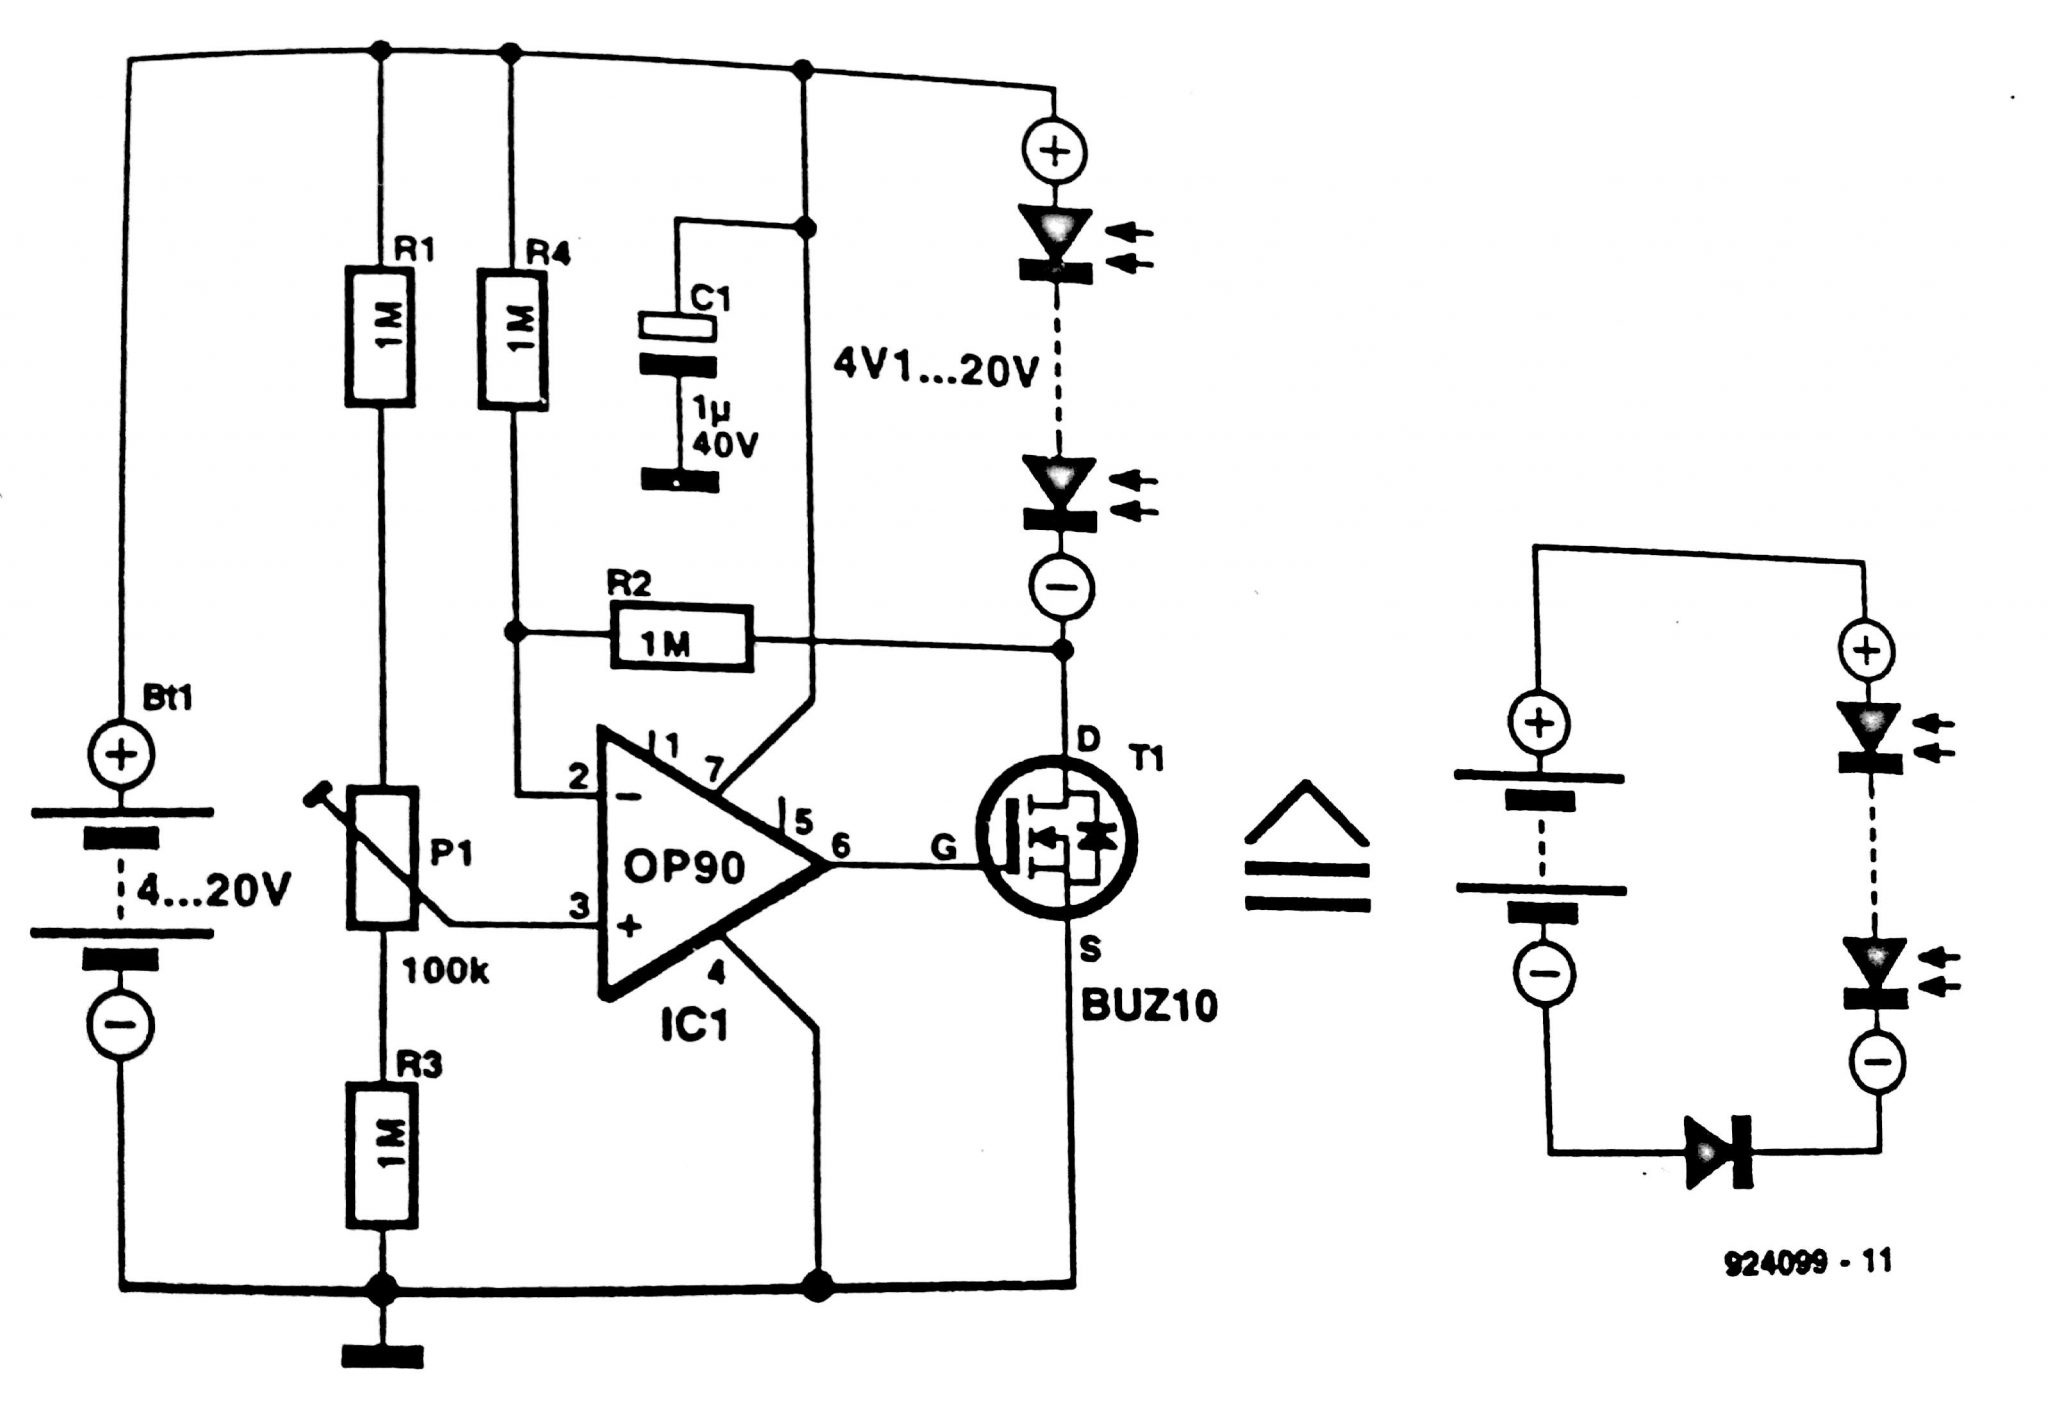 Dayton Unit Heater Wiring Diagram. Diagrams. Wiring